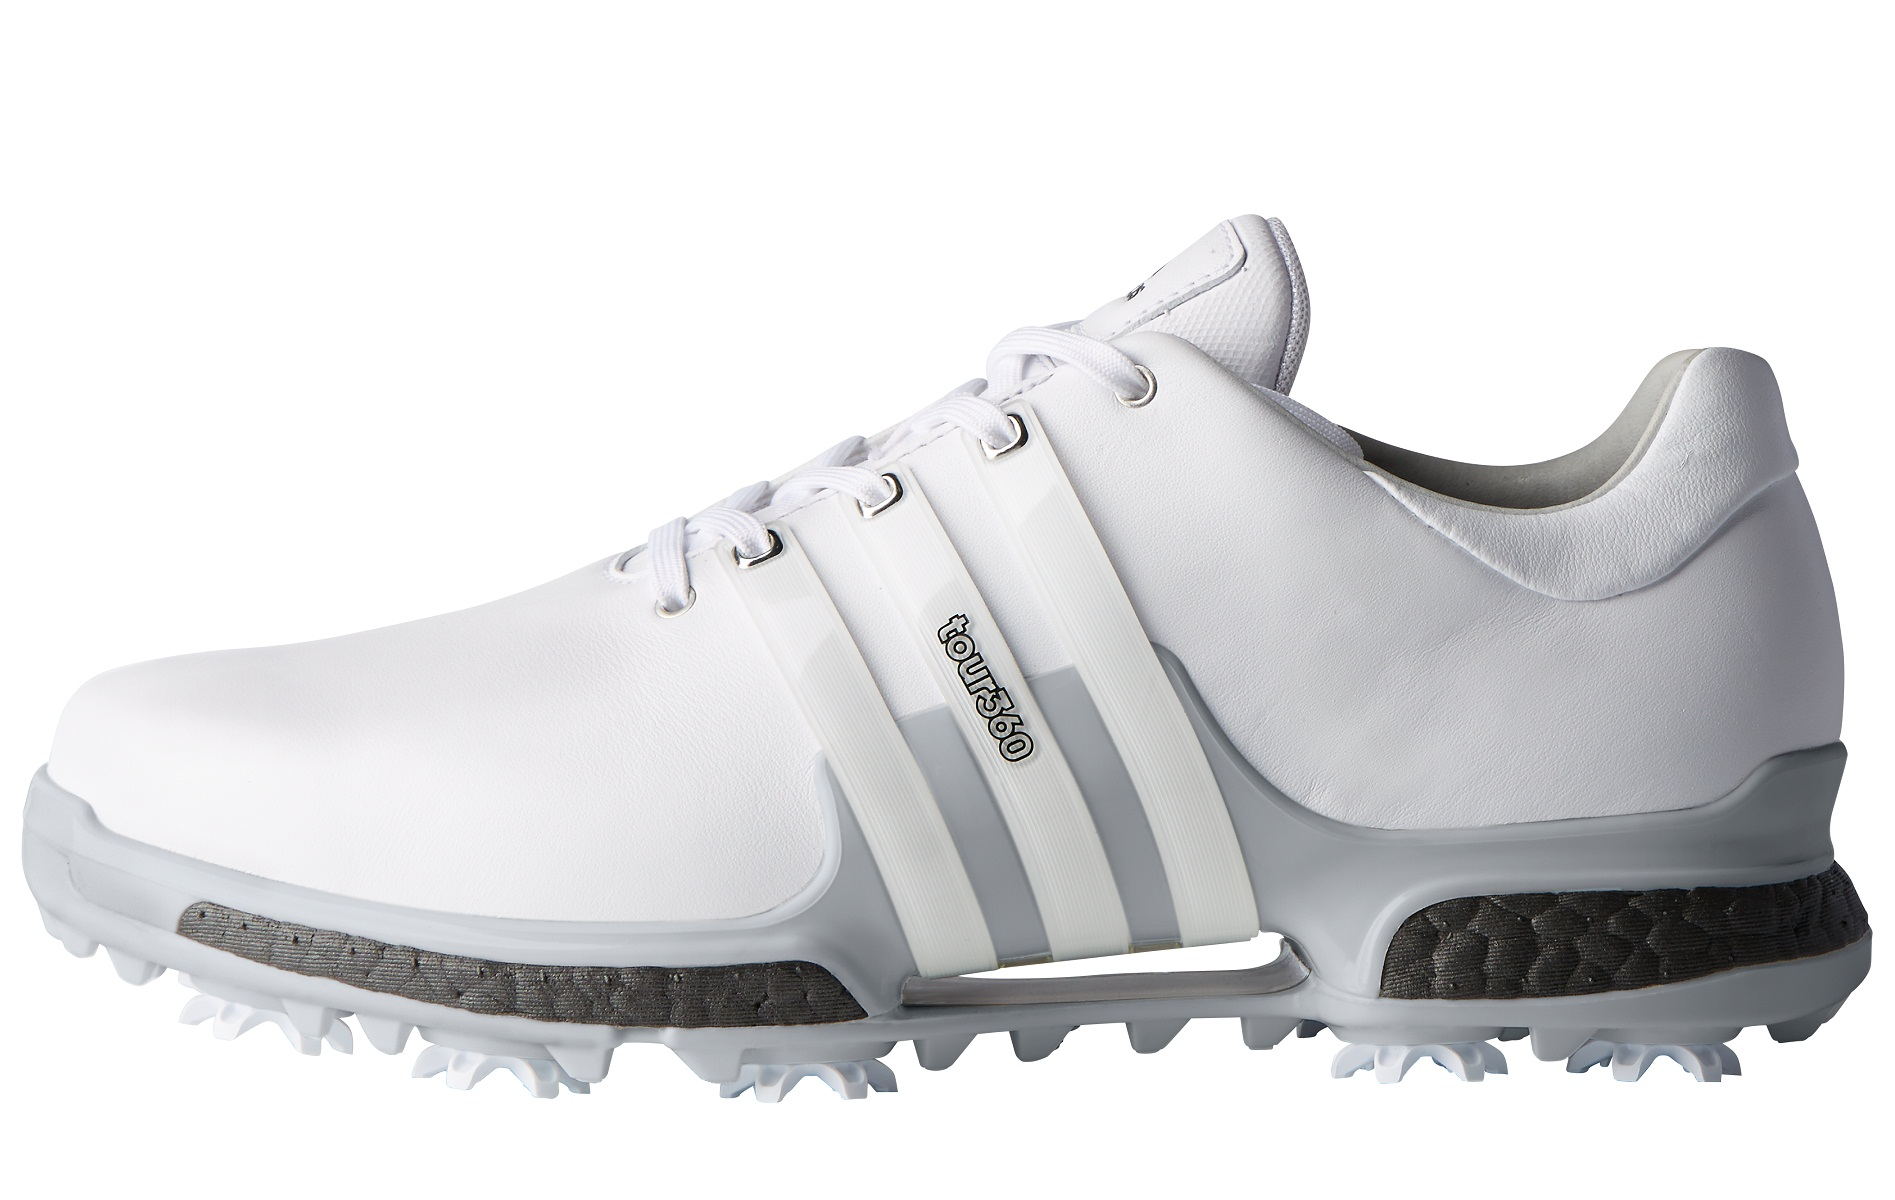 sports shoes 153df cddfc Adidas Tour360 Boost 2.0 White Shoes   RockBottomGolf.com